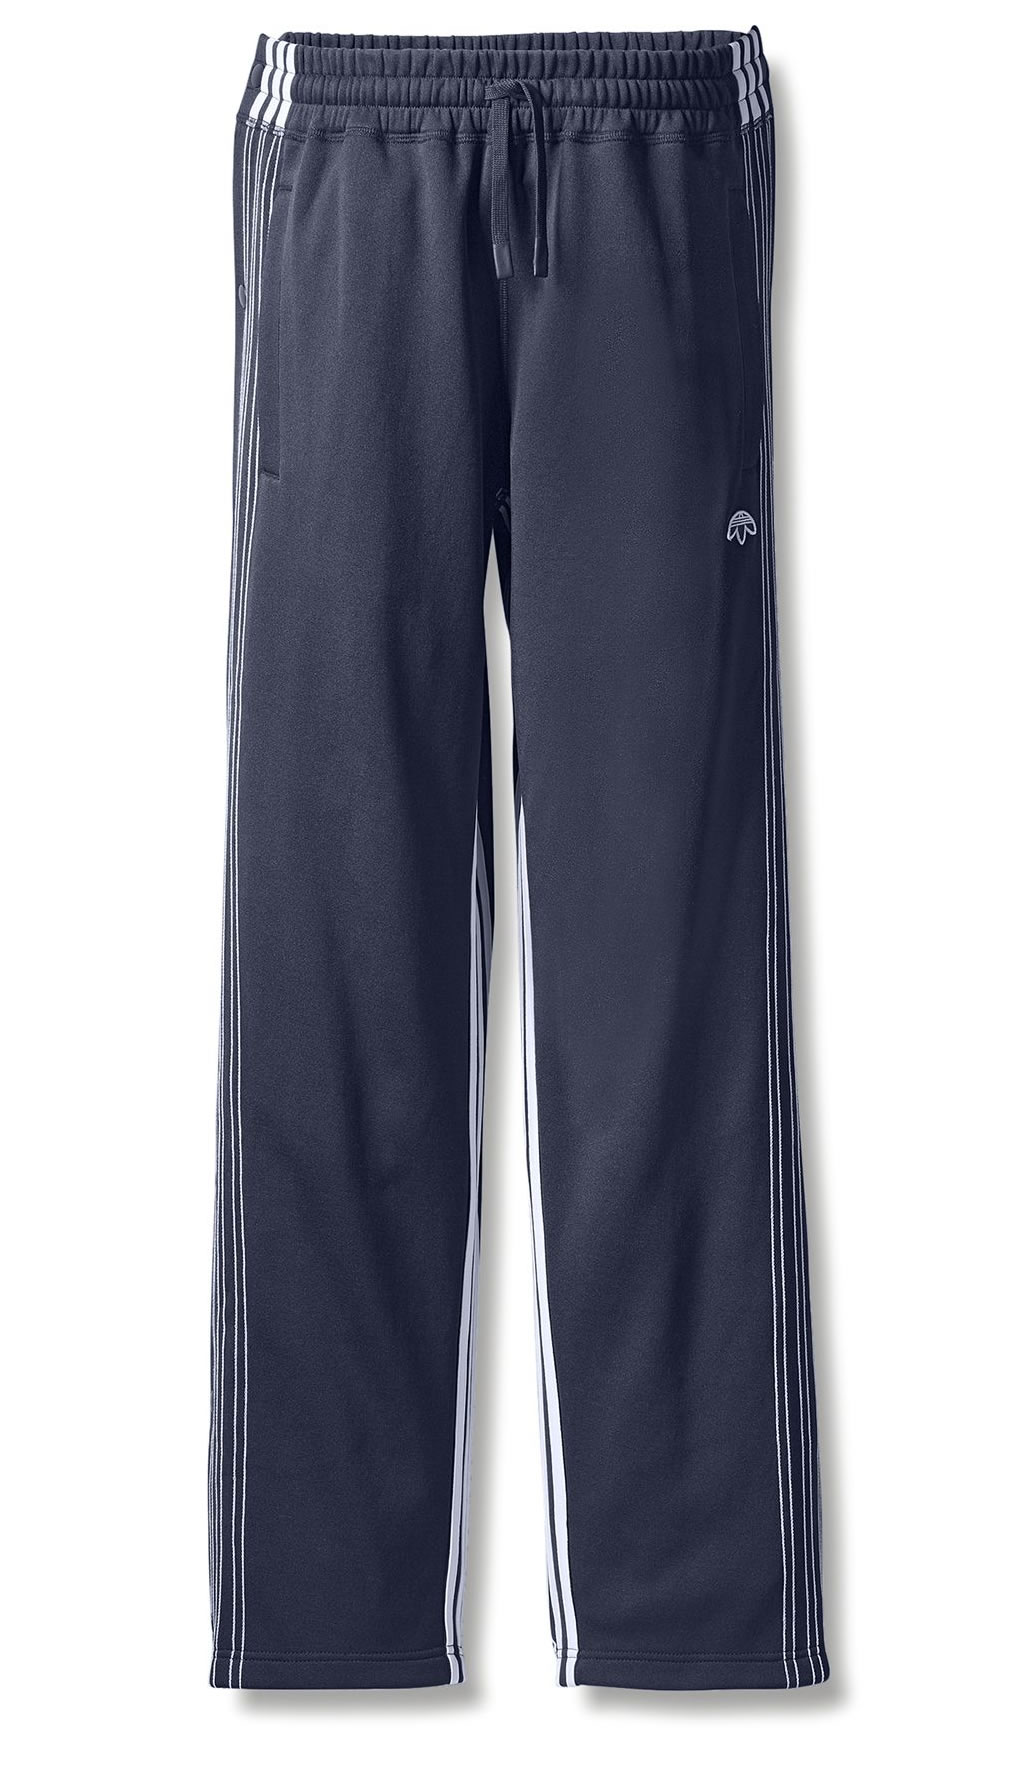 Blue Alexander Wang Track Pants by Adidas Originals